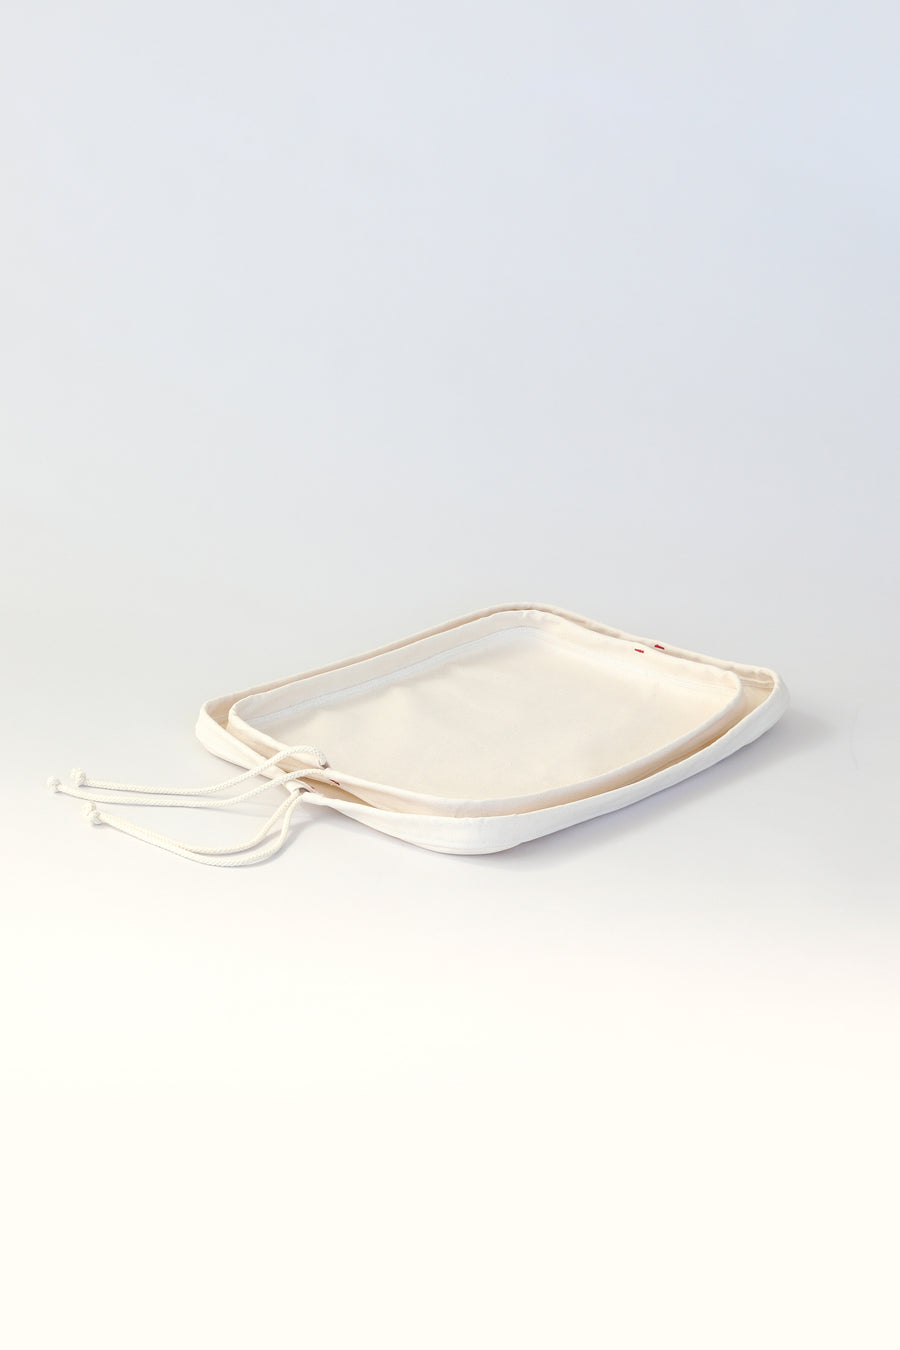 Couvre-Plat Pan Cover Kit - Aplat